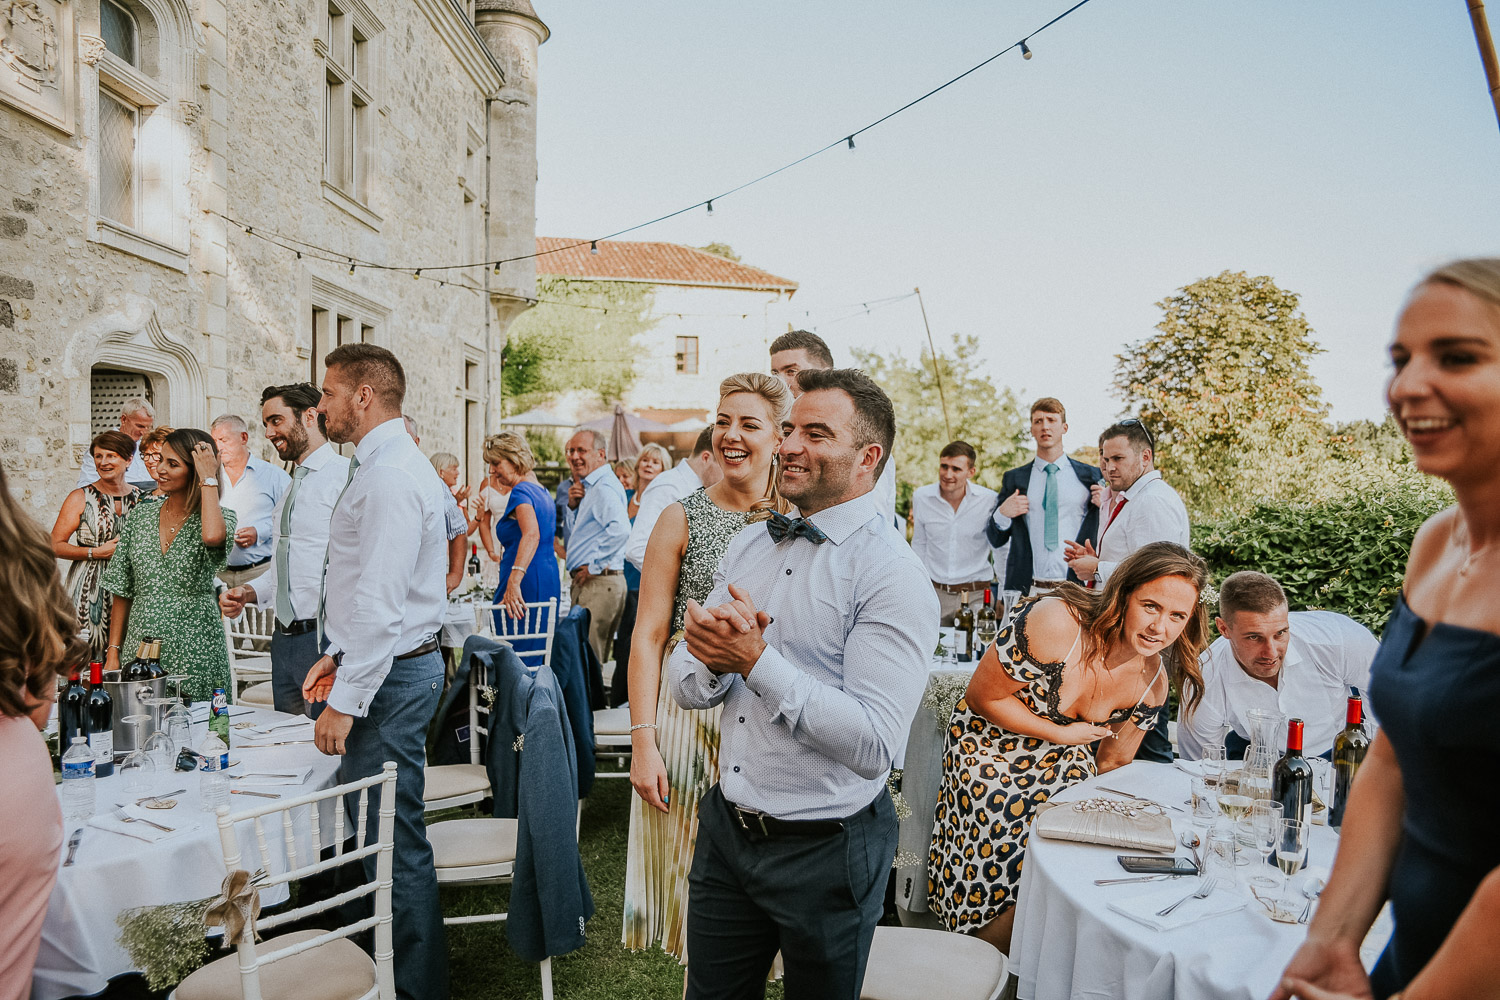 chateau_de_lisse_gers_gascony_south_west_france_family_wedding_katy_webb_photography_UK79